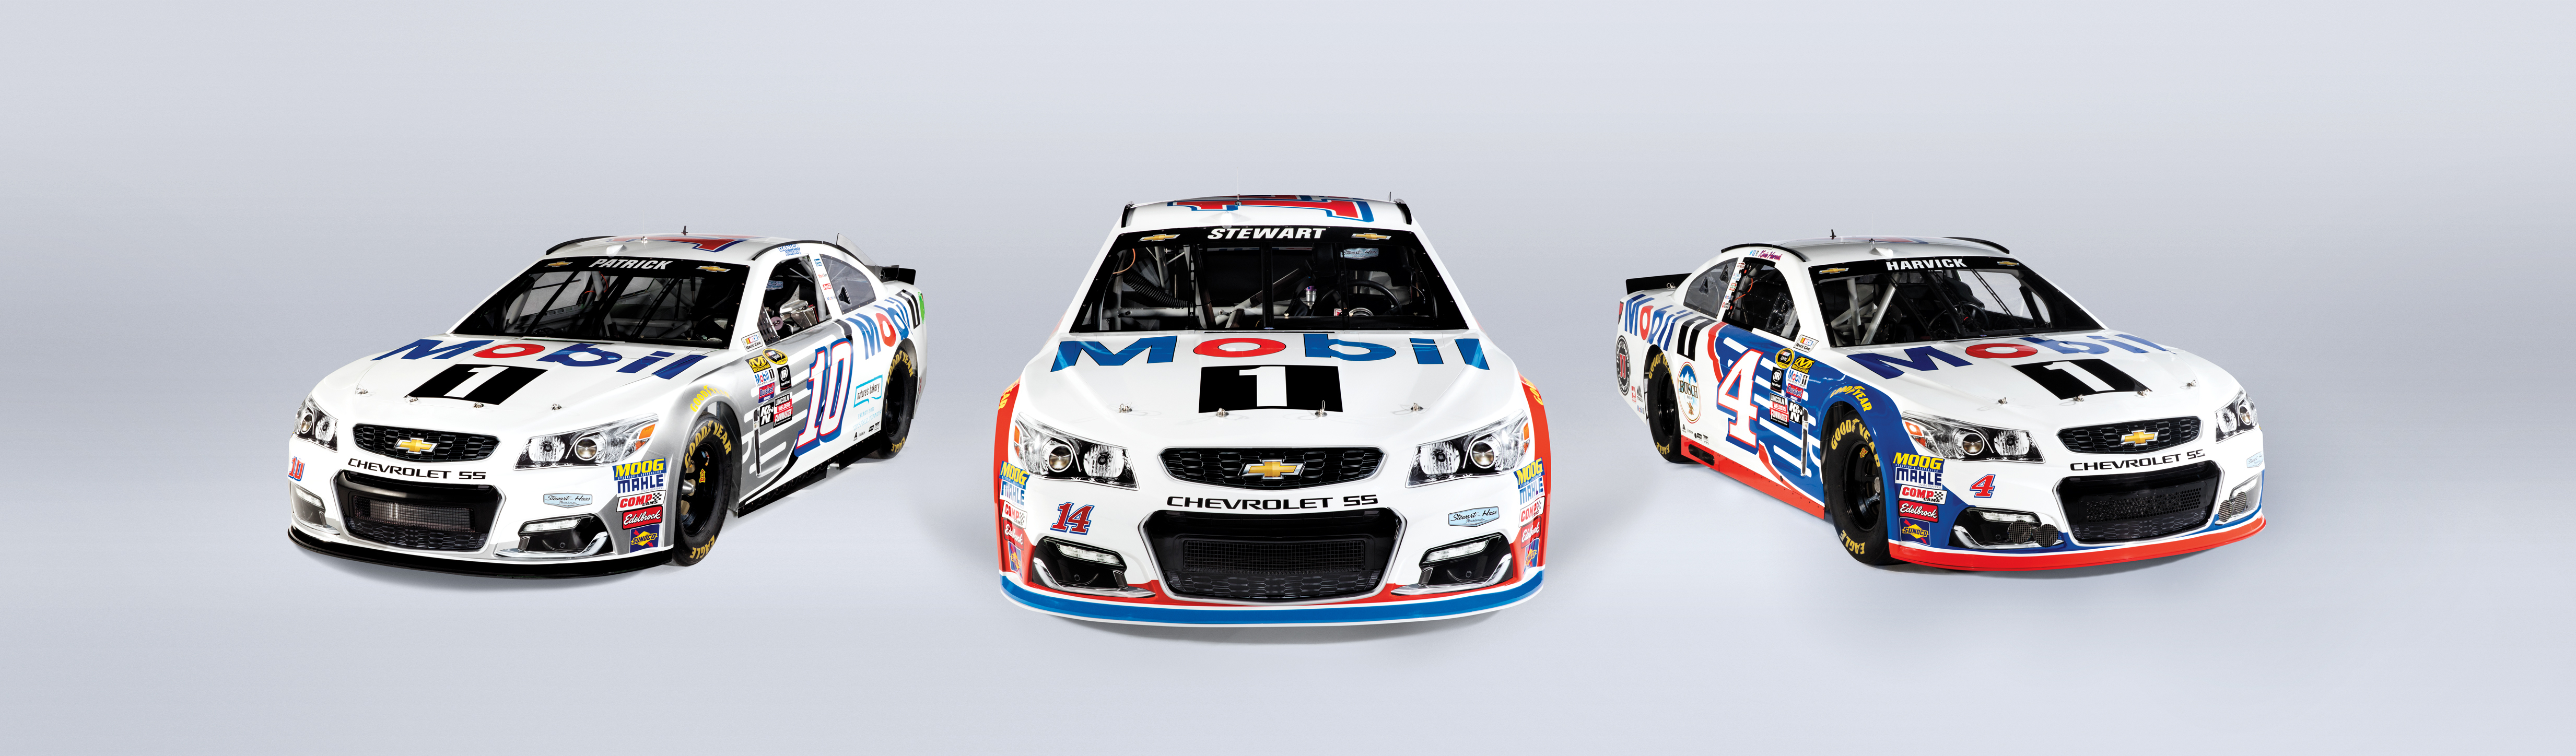 "Mobil 1 Going ""Three Wide"" with Stewart-Haas Racing in 2016 ..."